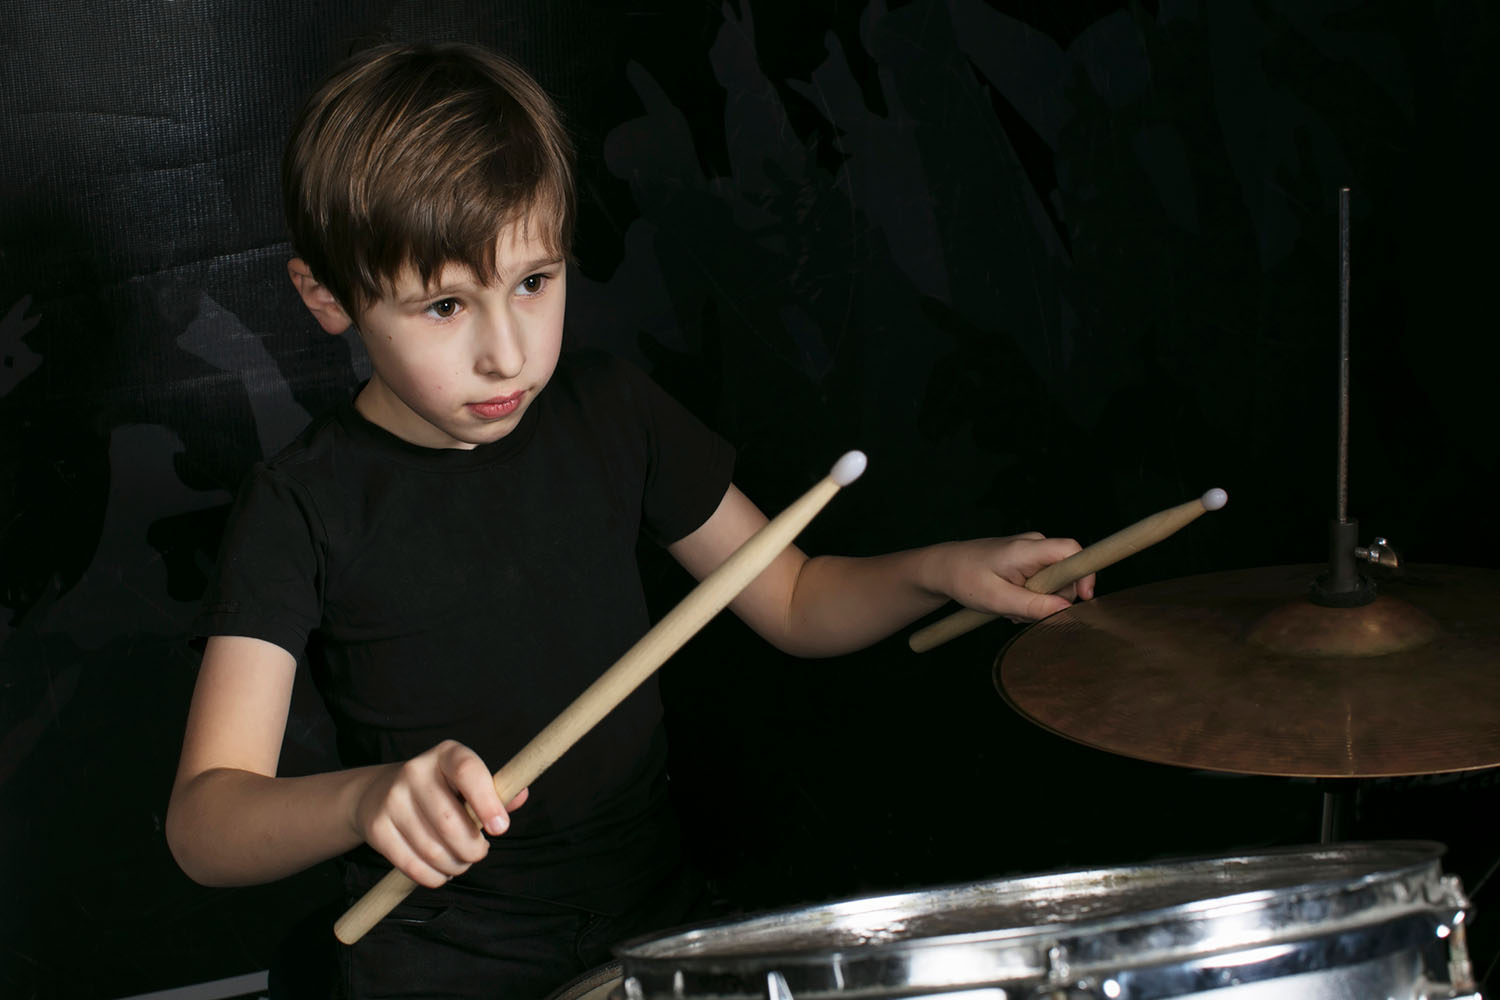 Drum lessons rock at Greenwich Arts Academy